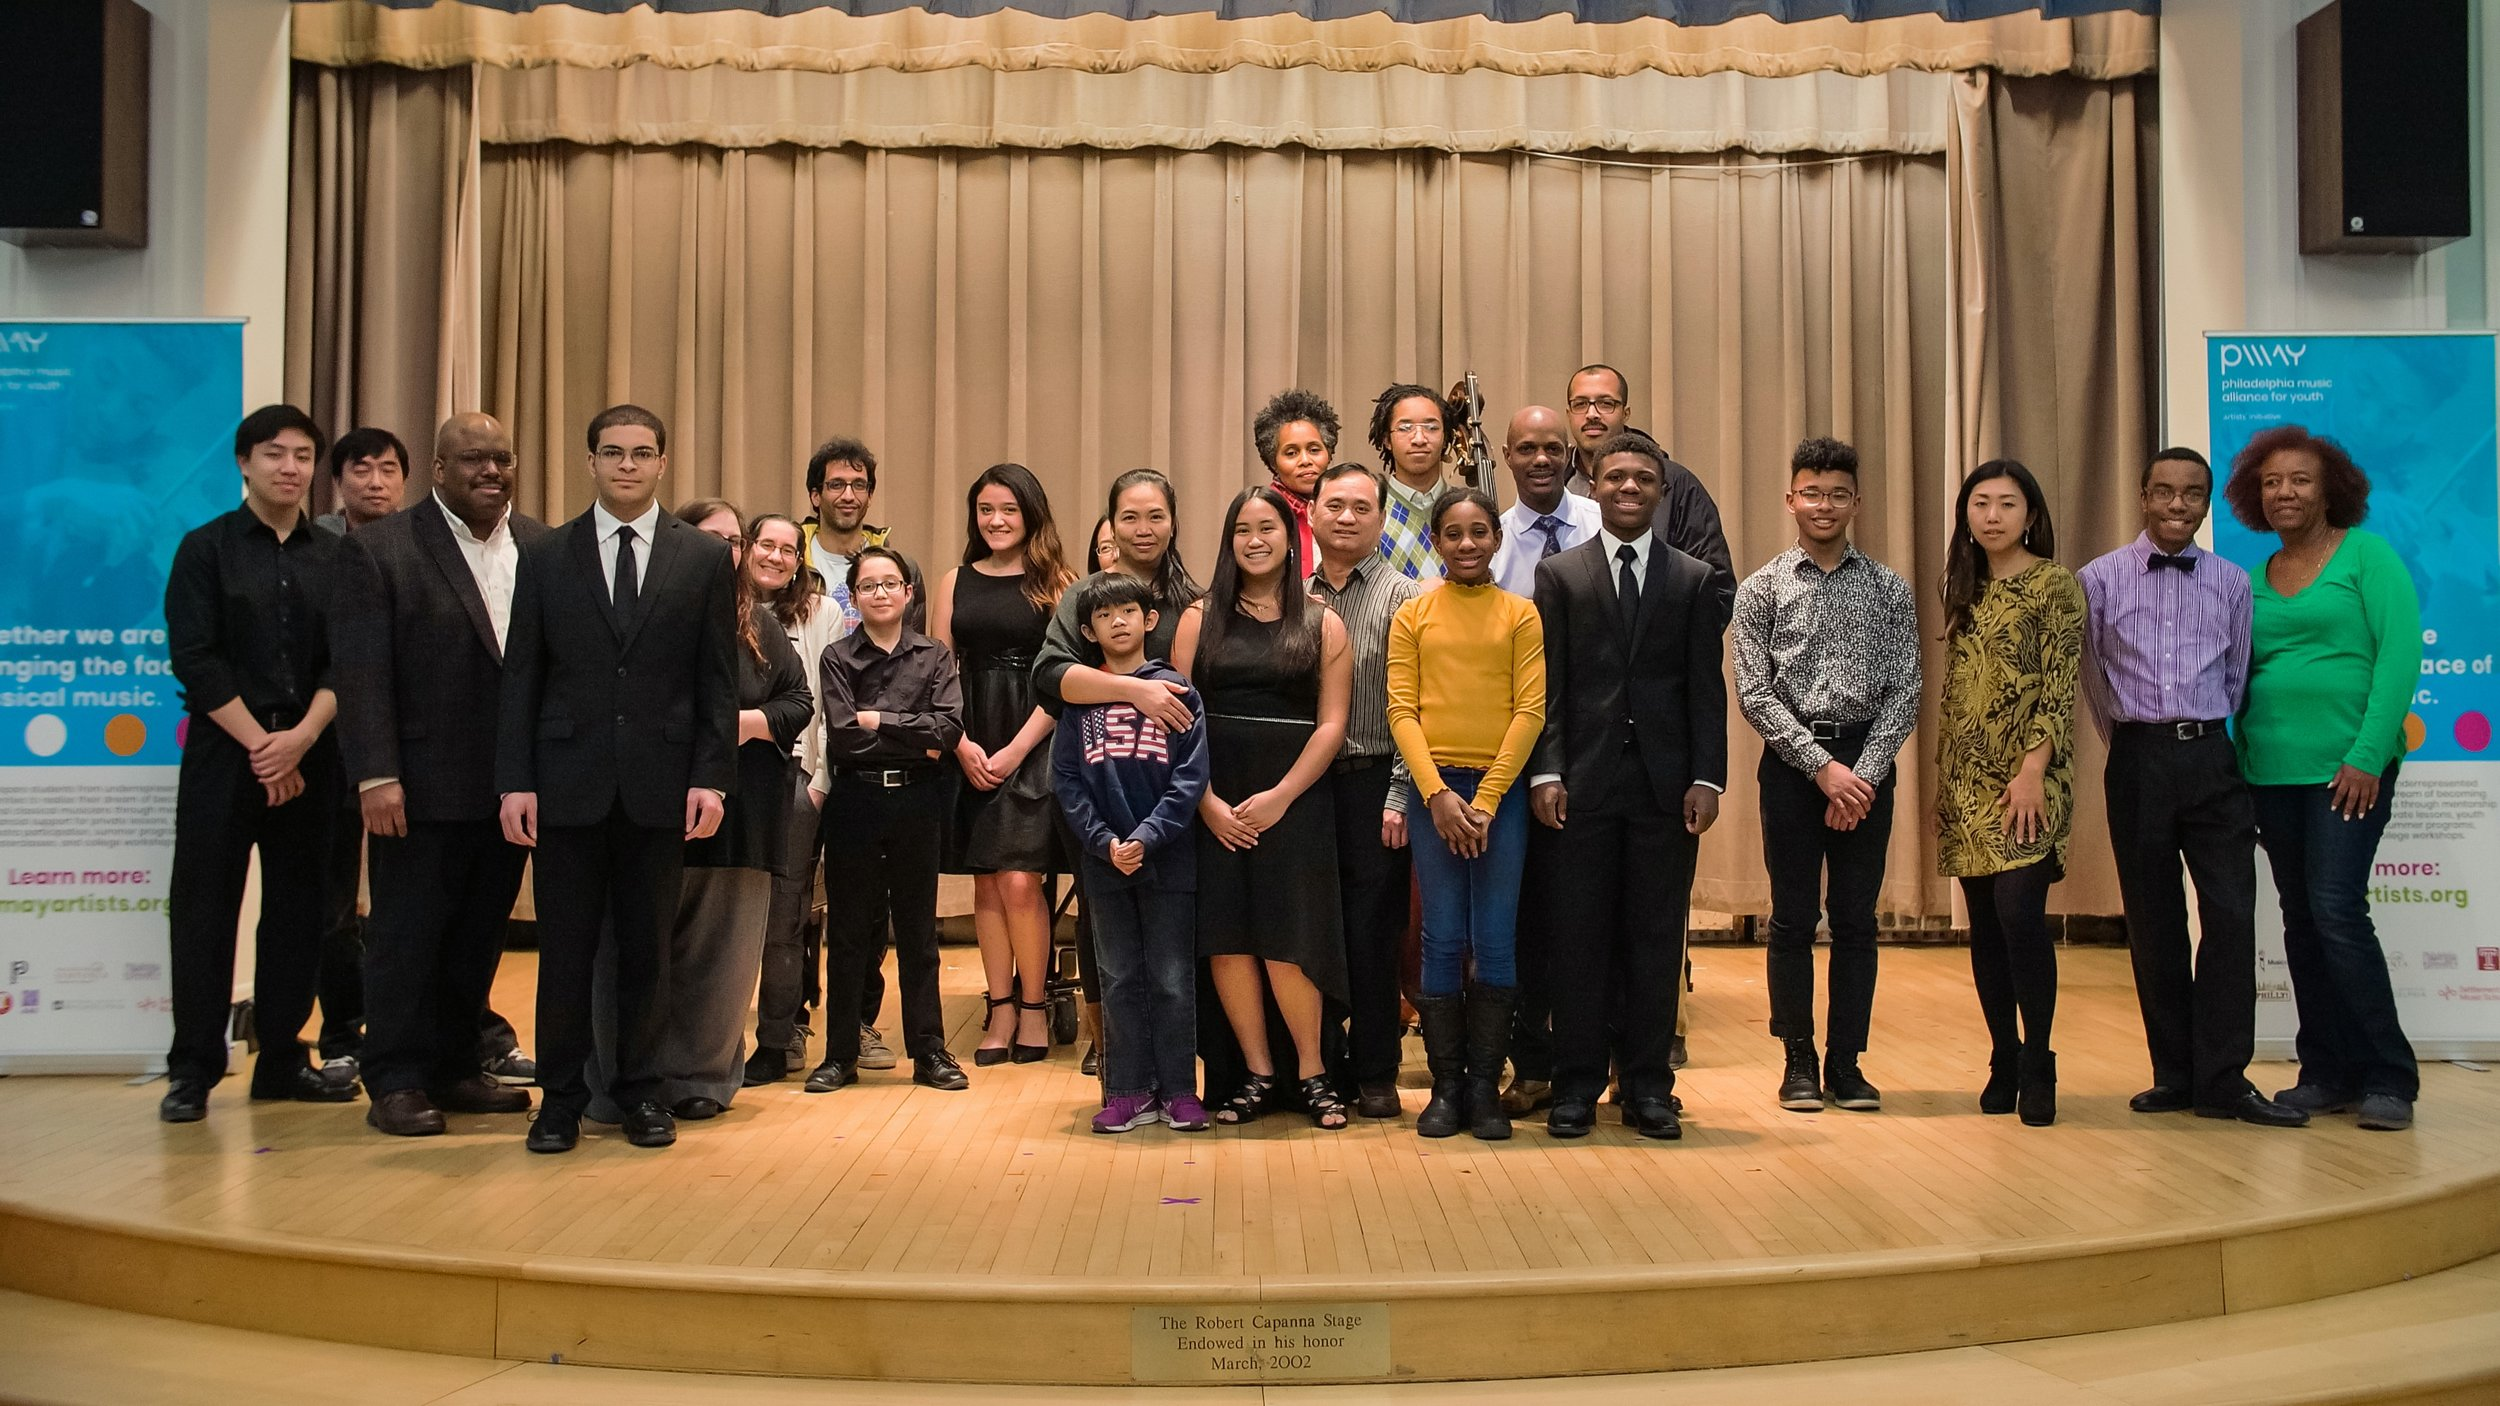 PMAY Showcase Recital Family Picture Feb 2019.jpg